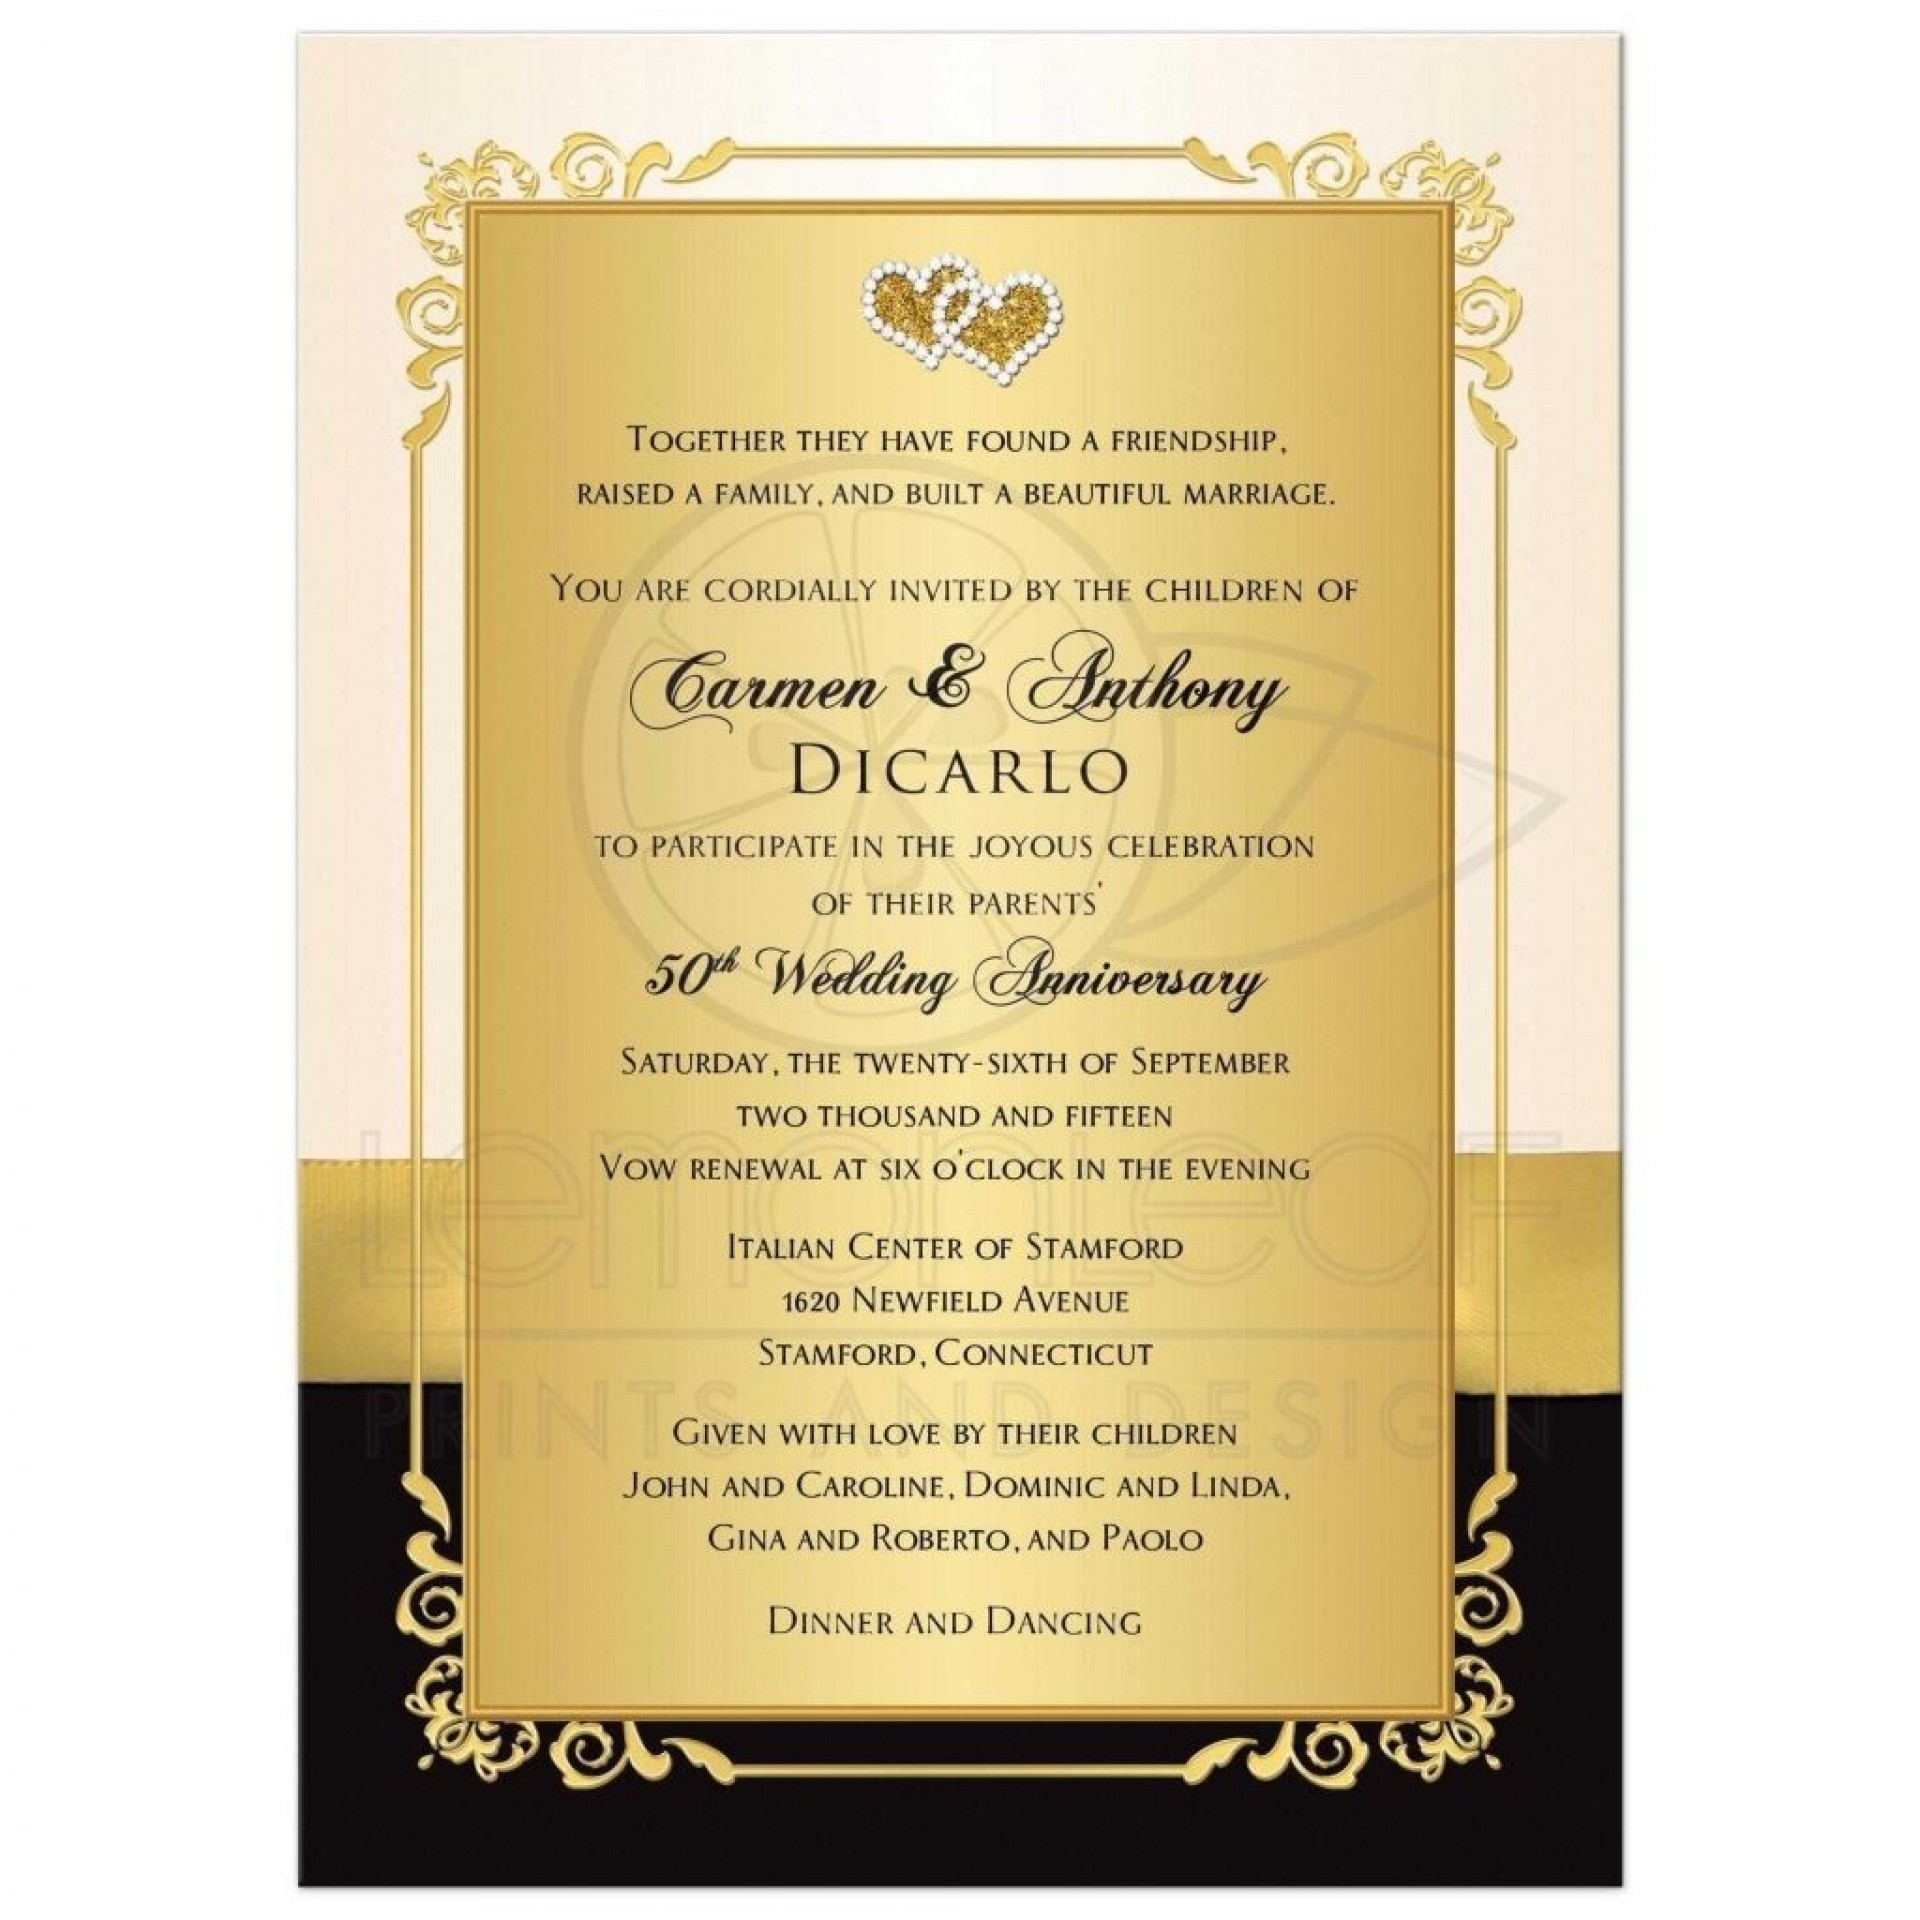 000 Shocking 50th Wedding Anniversary Invitation Sample Example  Samples Free Party Template Card Idea1920